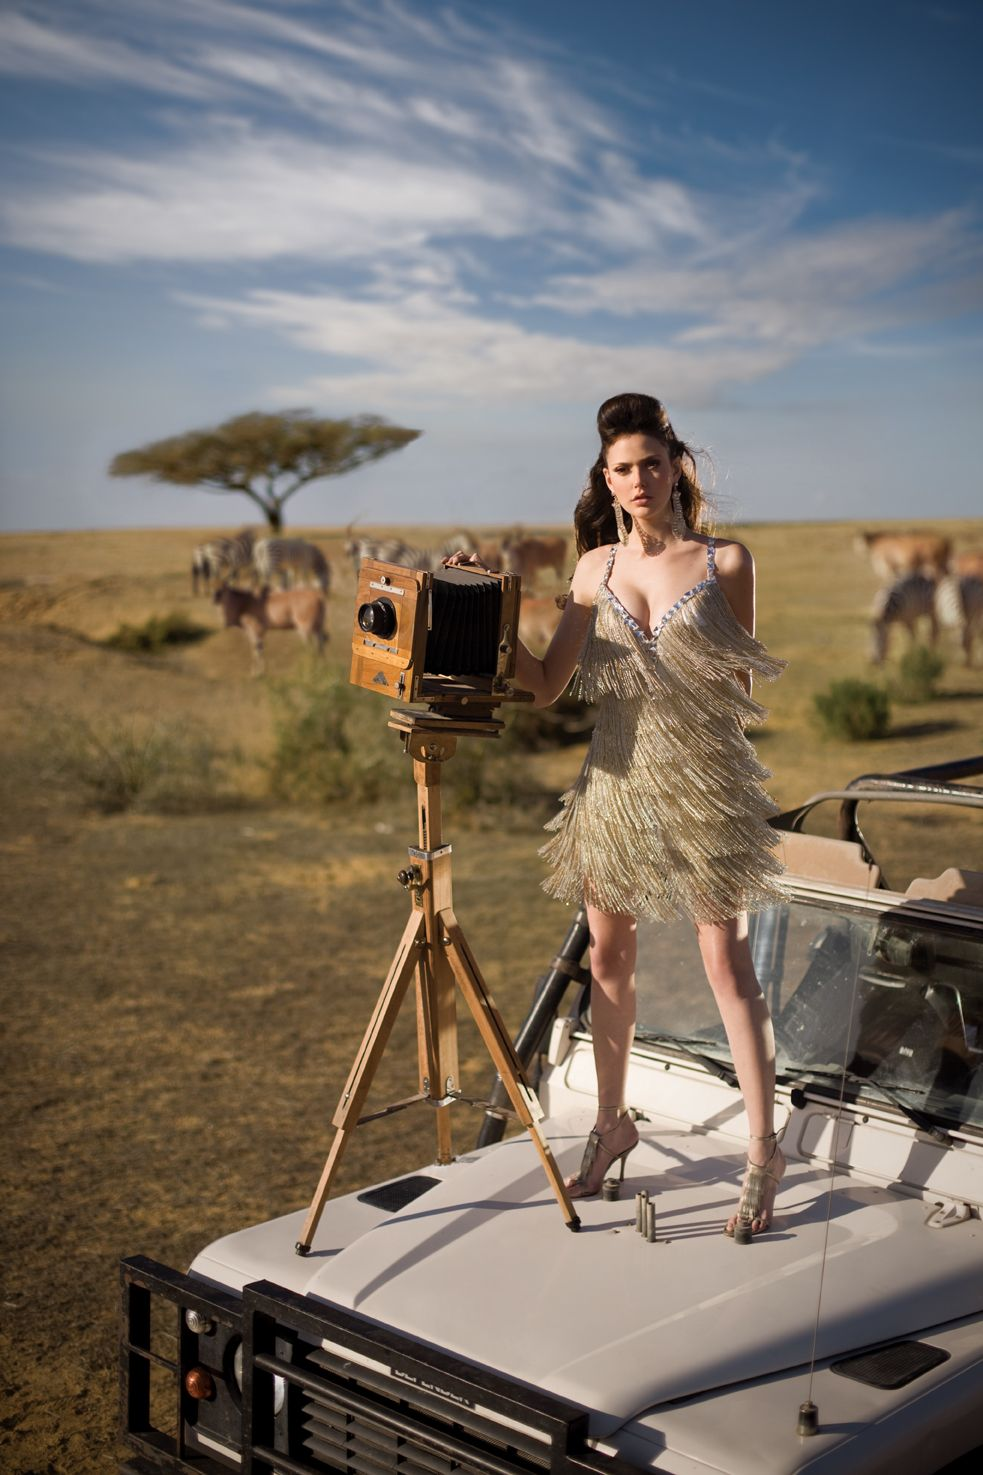 110 Must Have Wedding Photos: Yes Here I Am In The Wild Filming My Son's Eagle Project